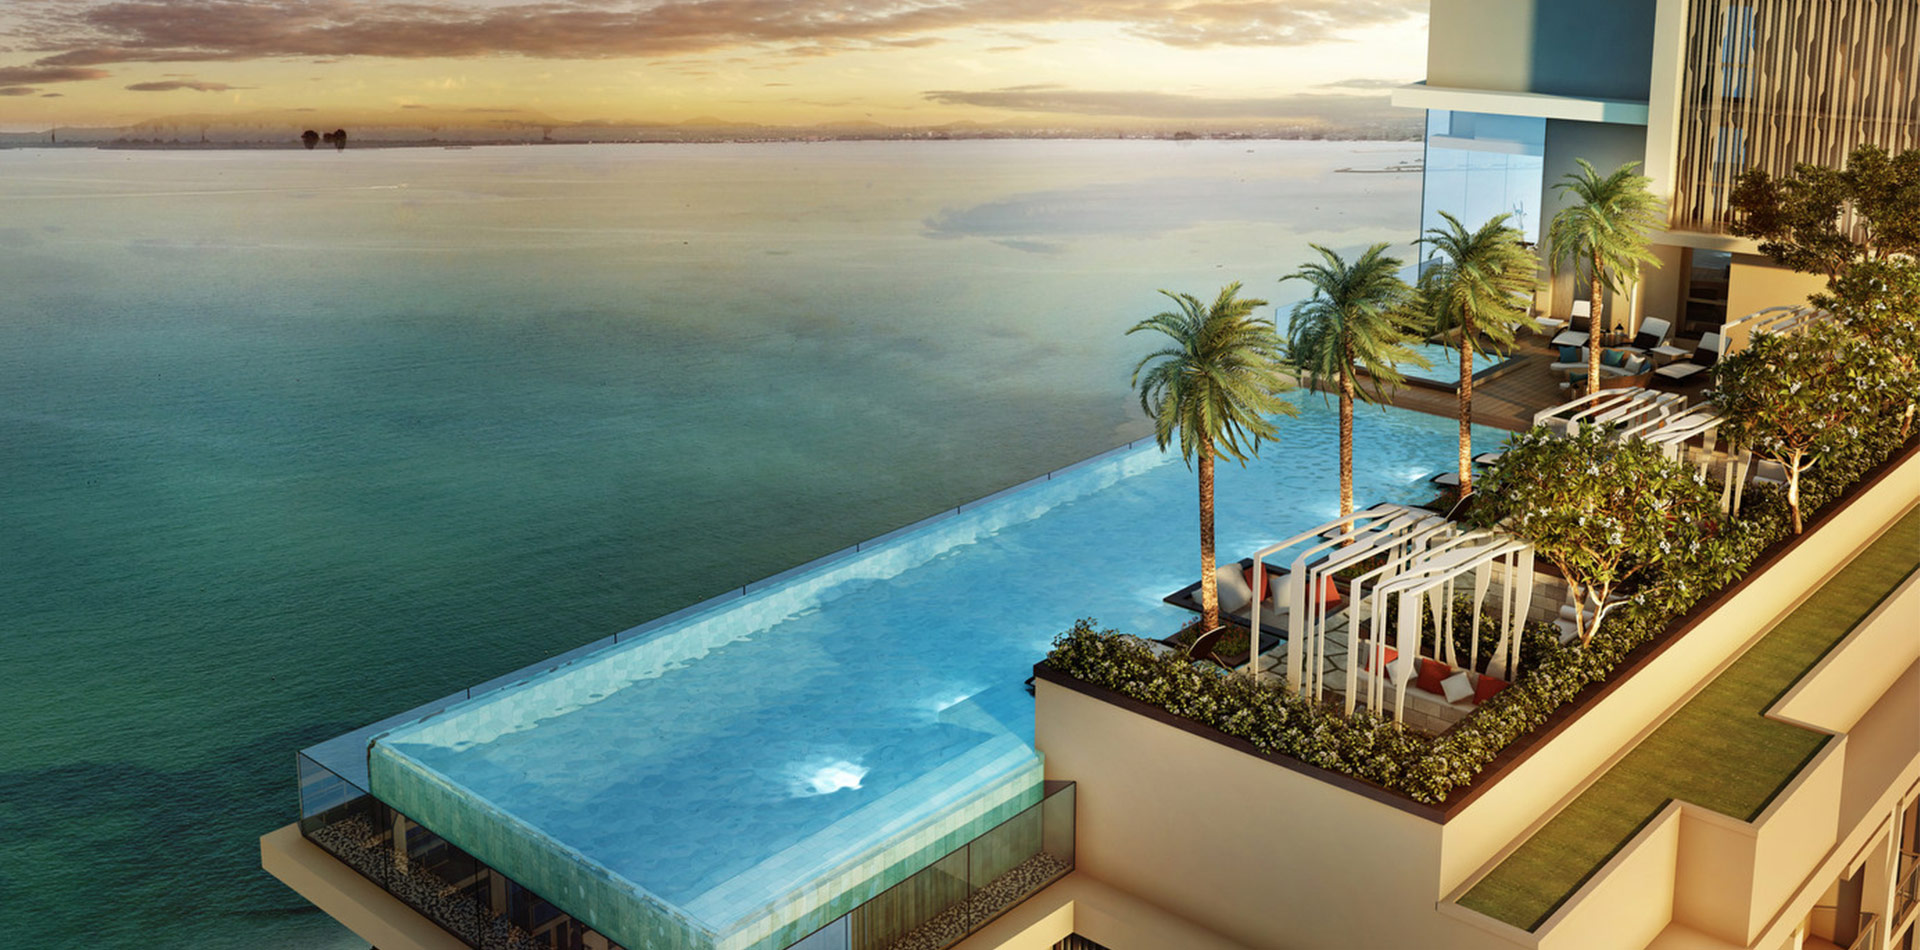 The riviera wong amat condo pattaya